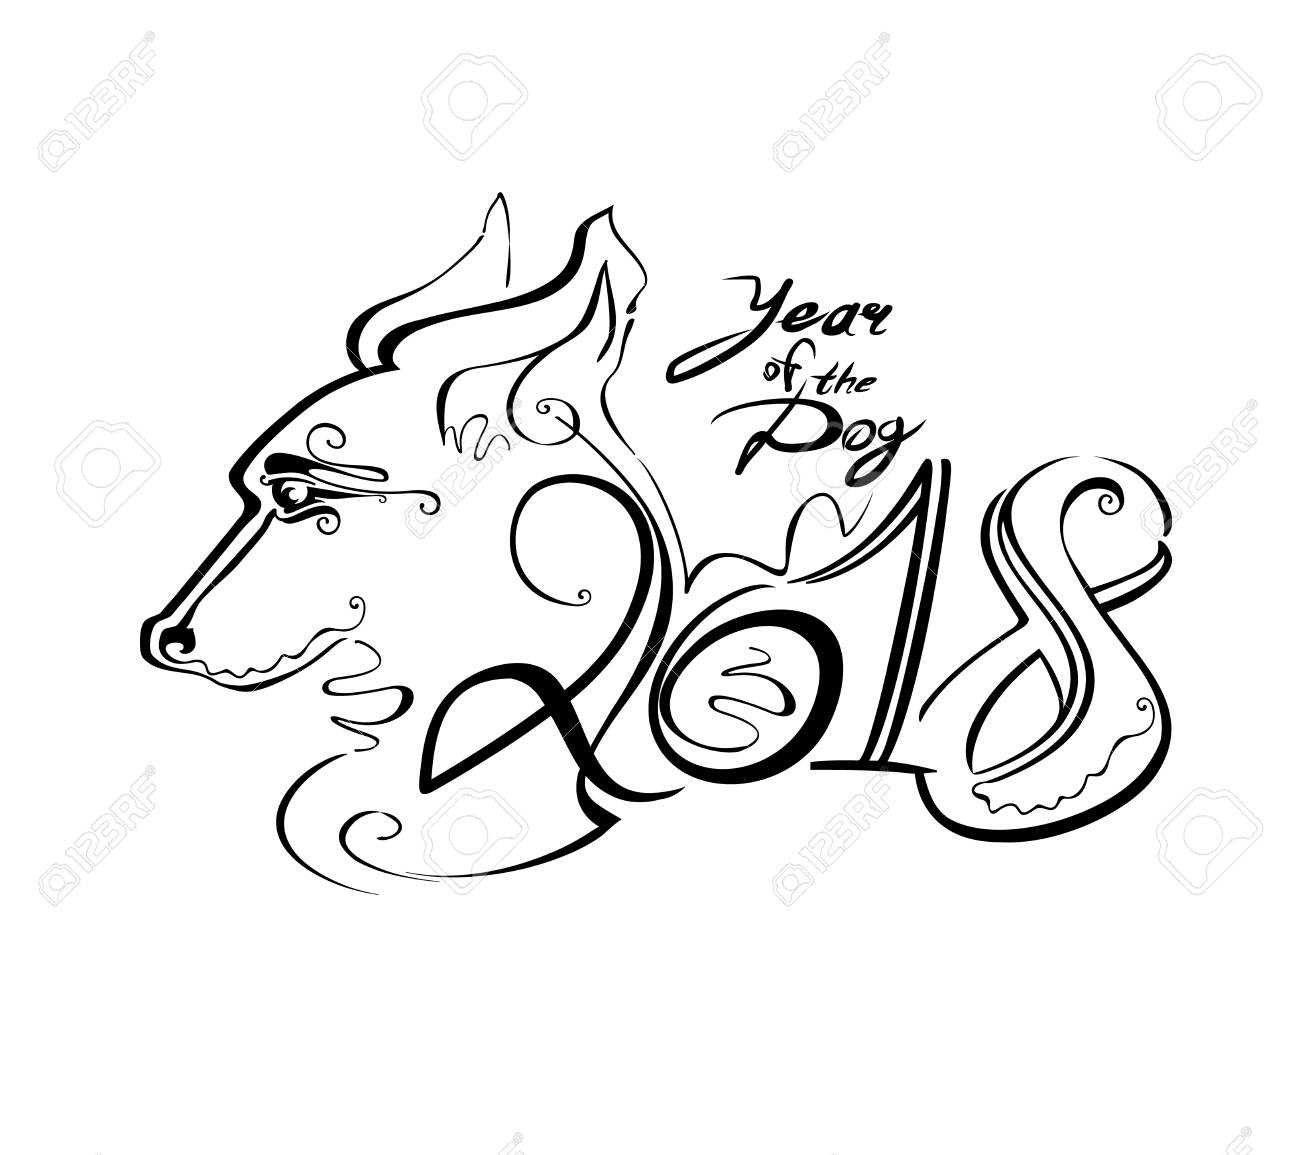 1300x1155 Handwriting Template With The 2018 And Dog Head. Line Art Curl